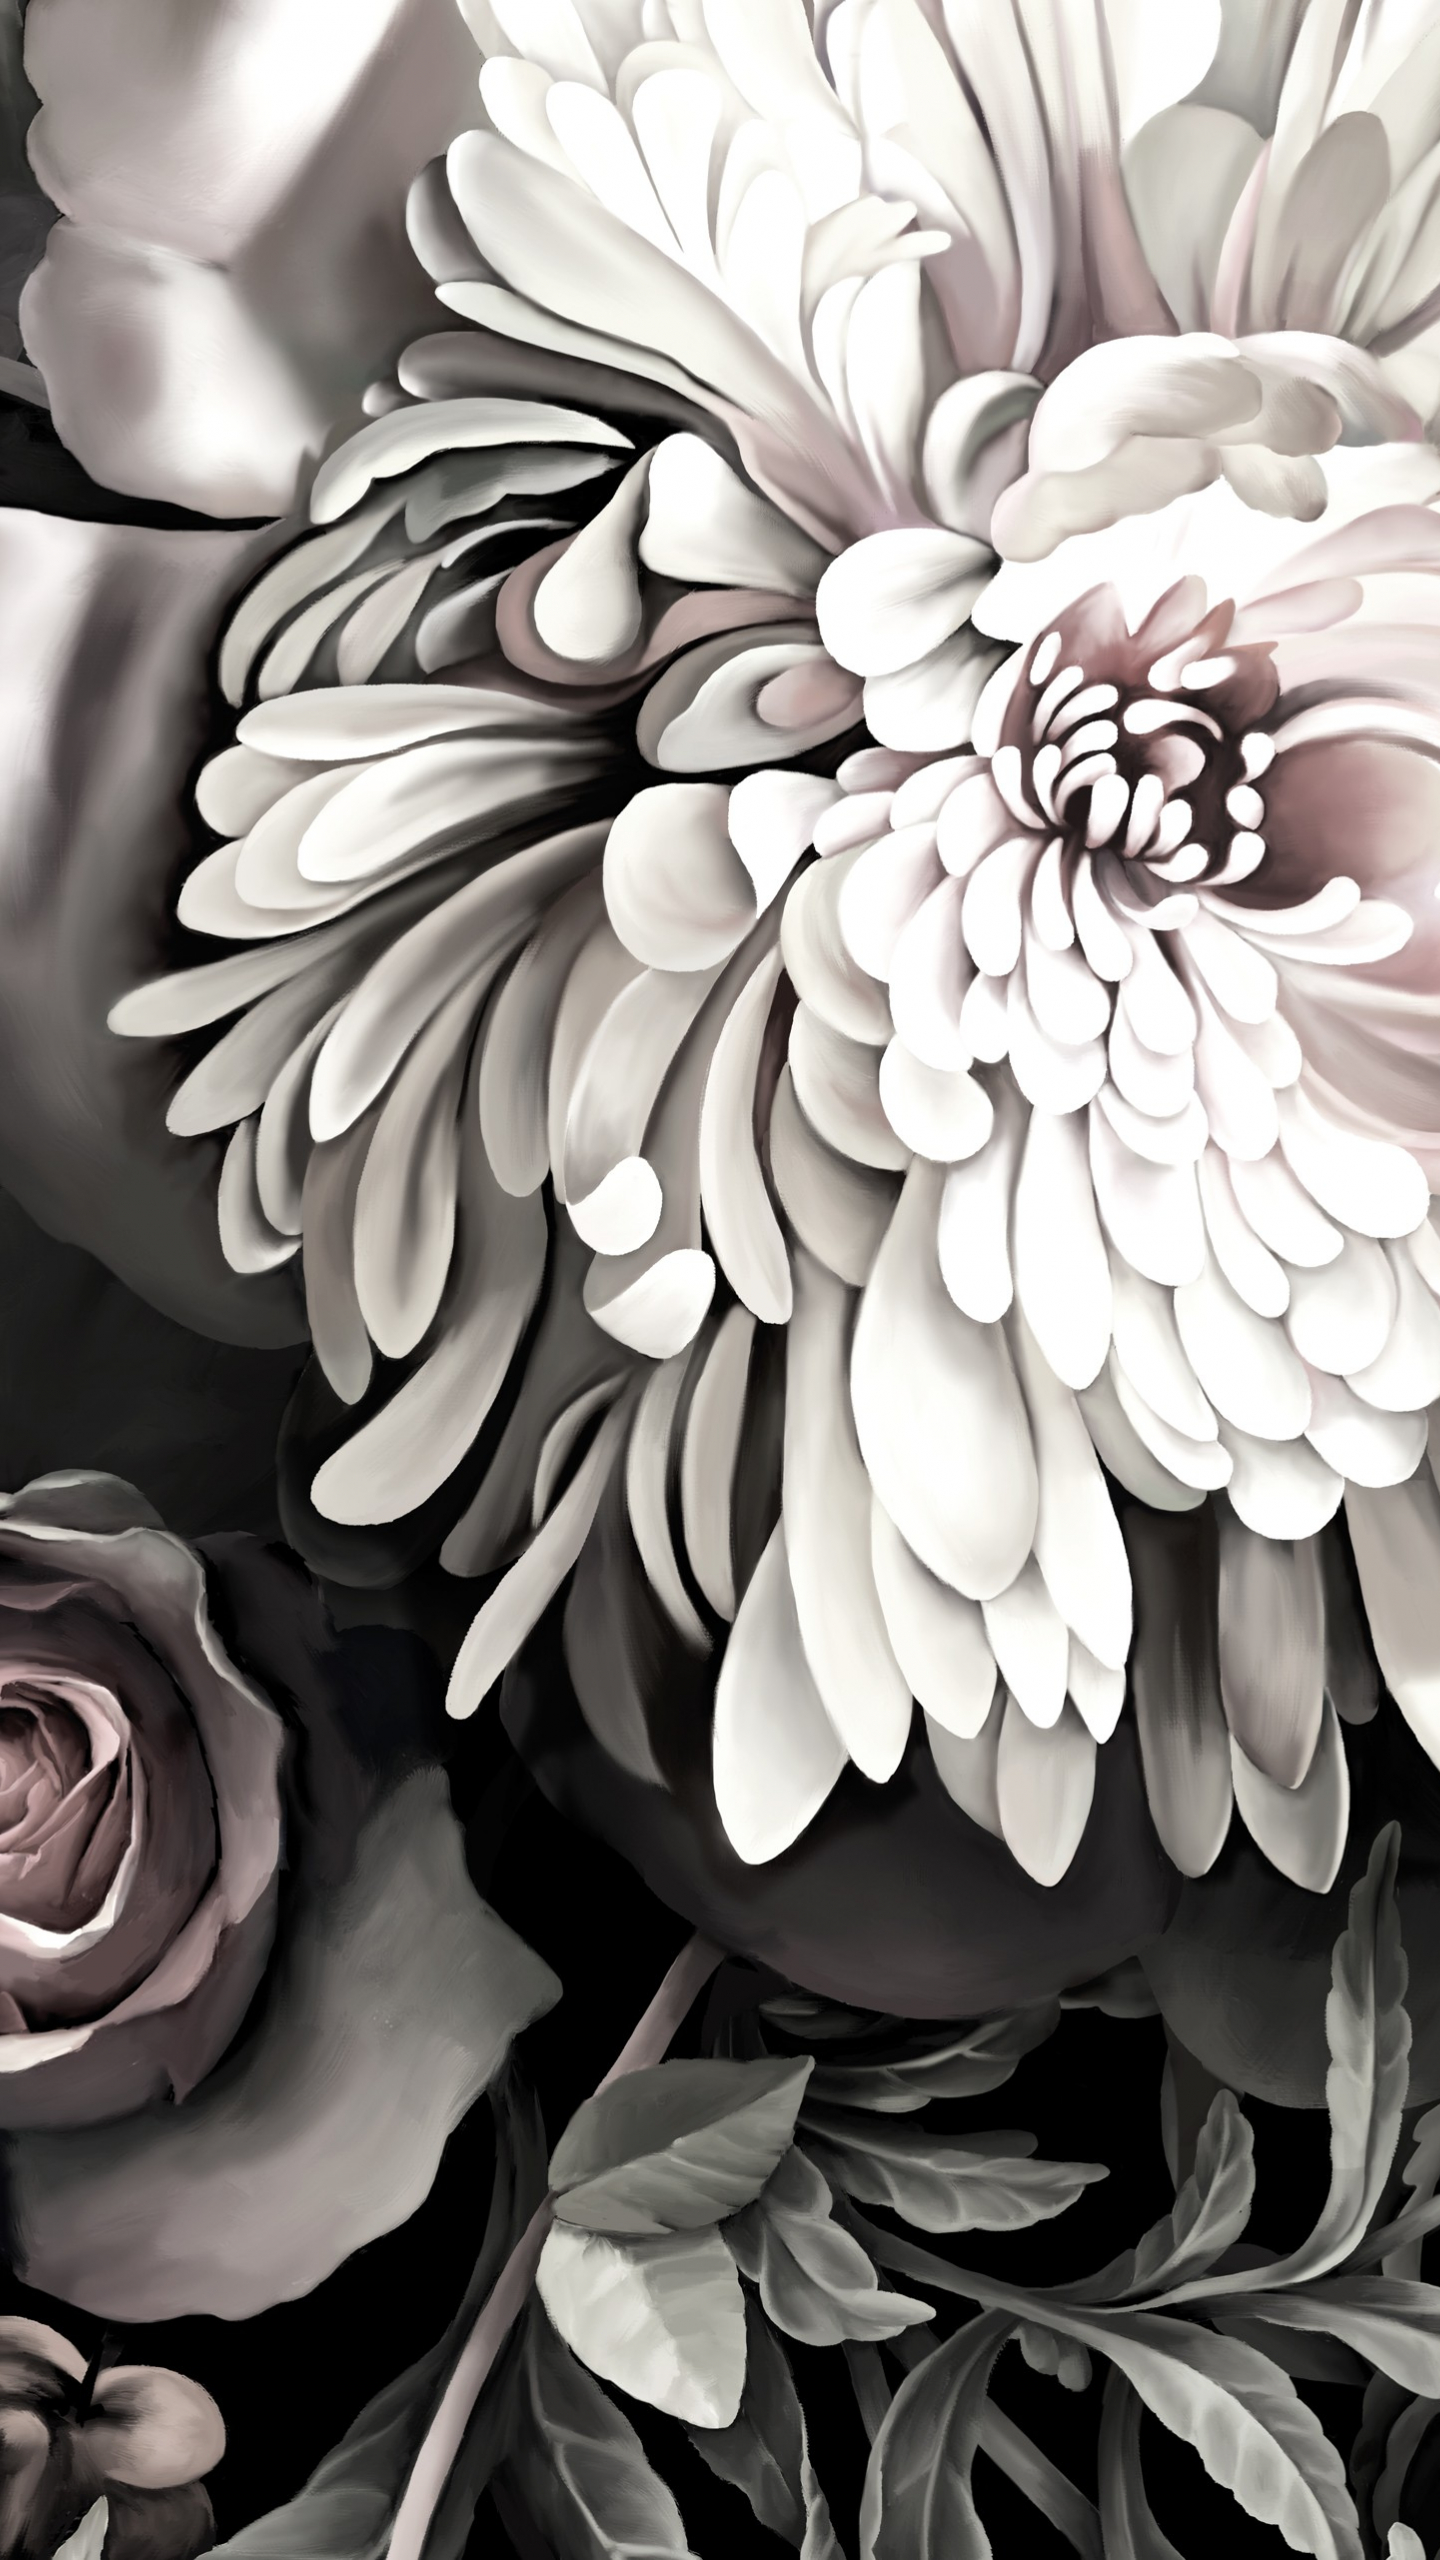 Free Download Dark Floral Ii Black Desaturated By Ellie Cashman